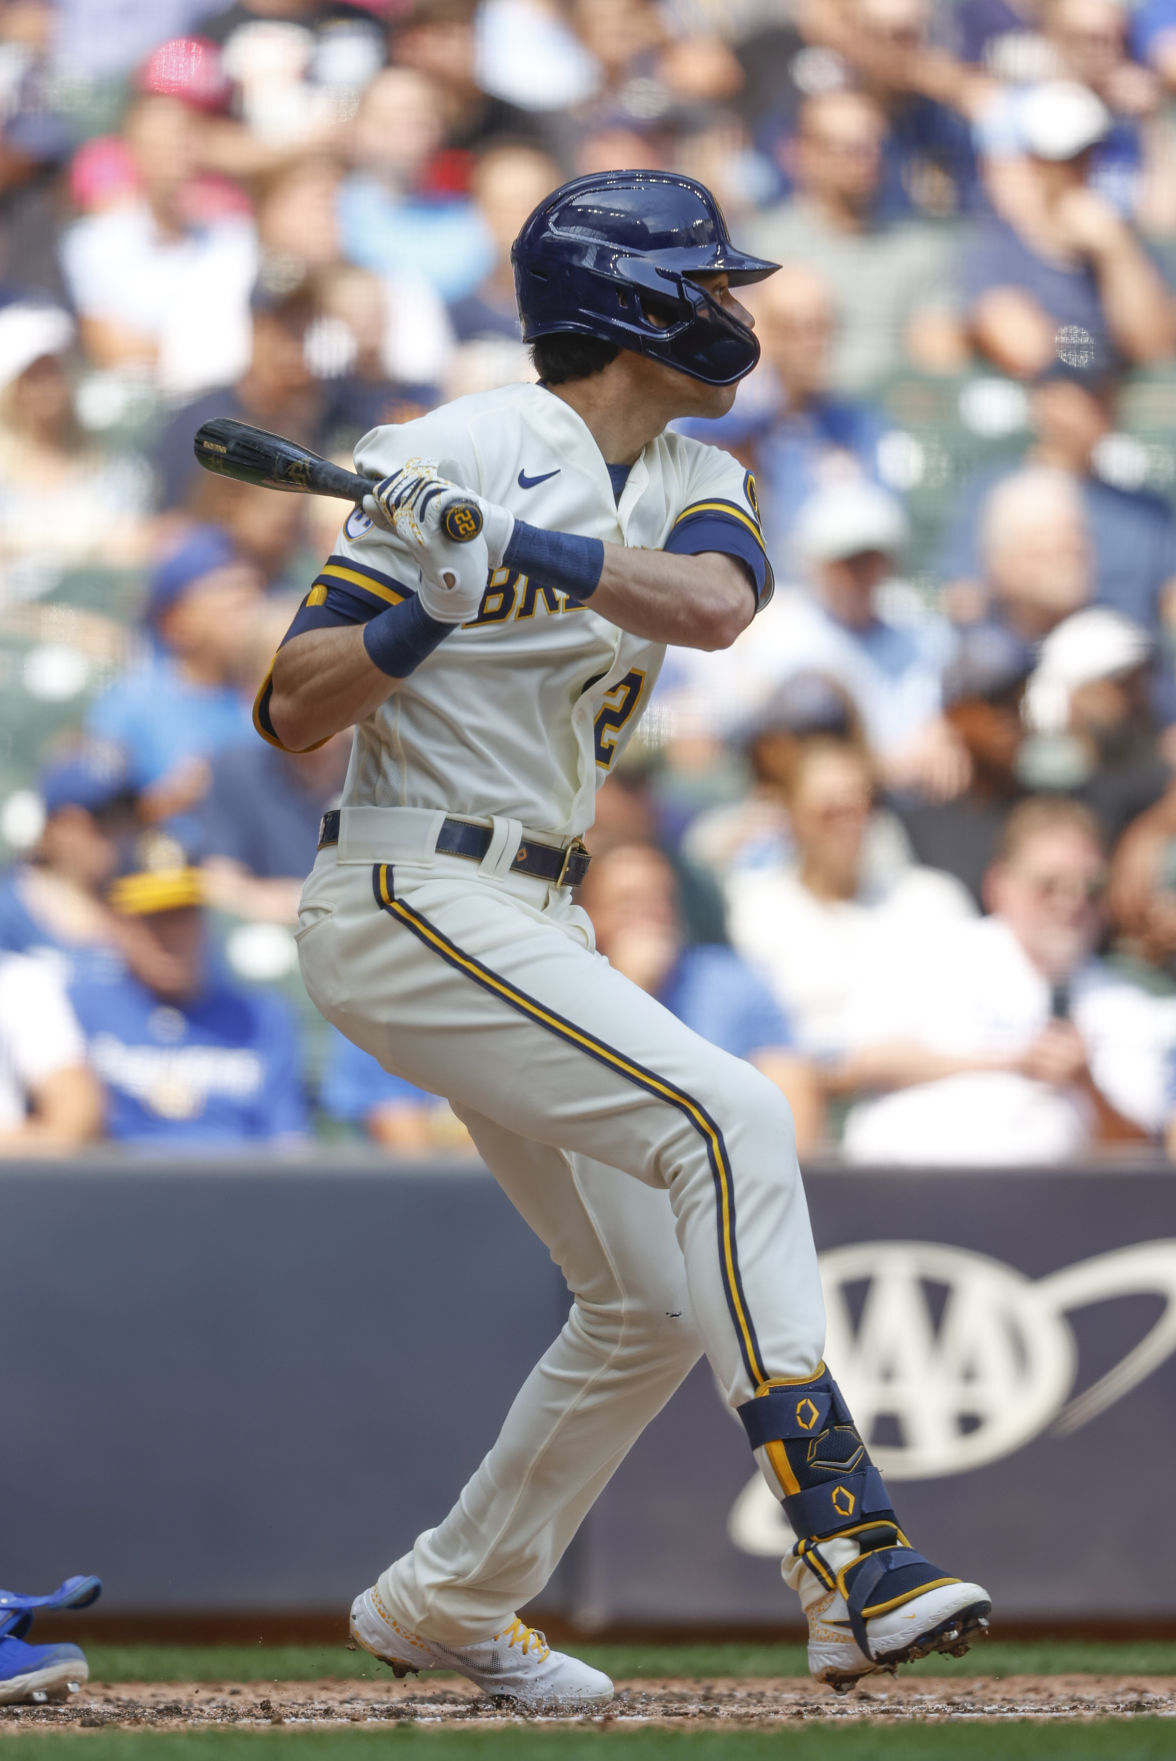 brewers jump page photo 7-21